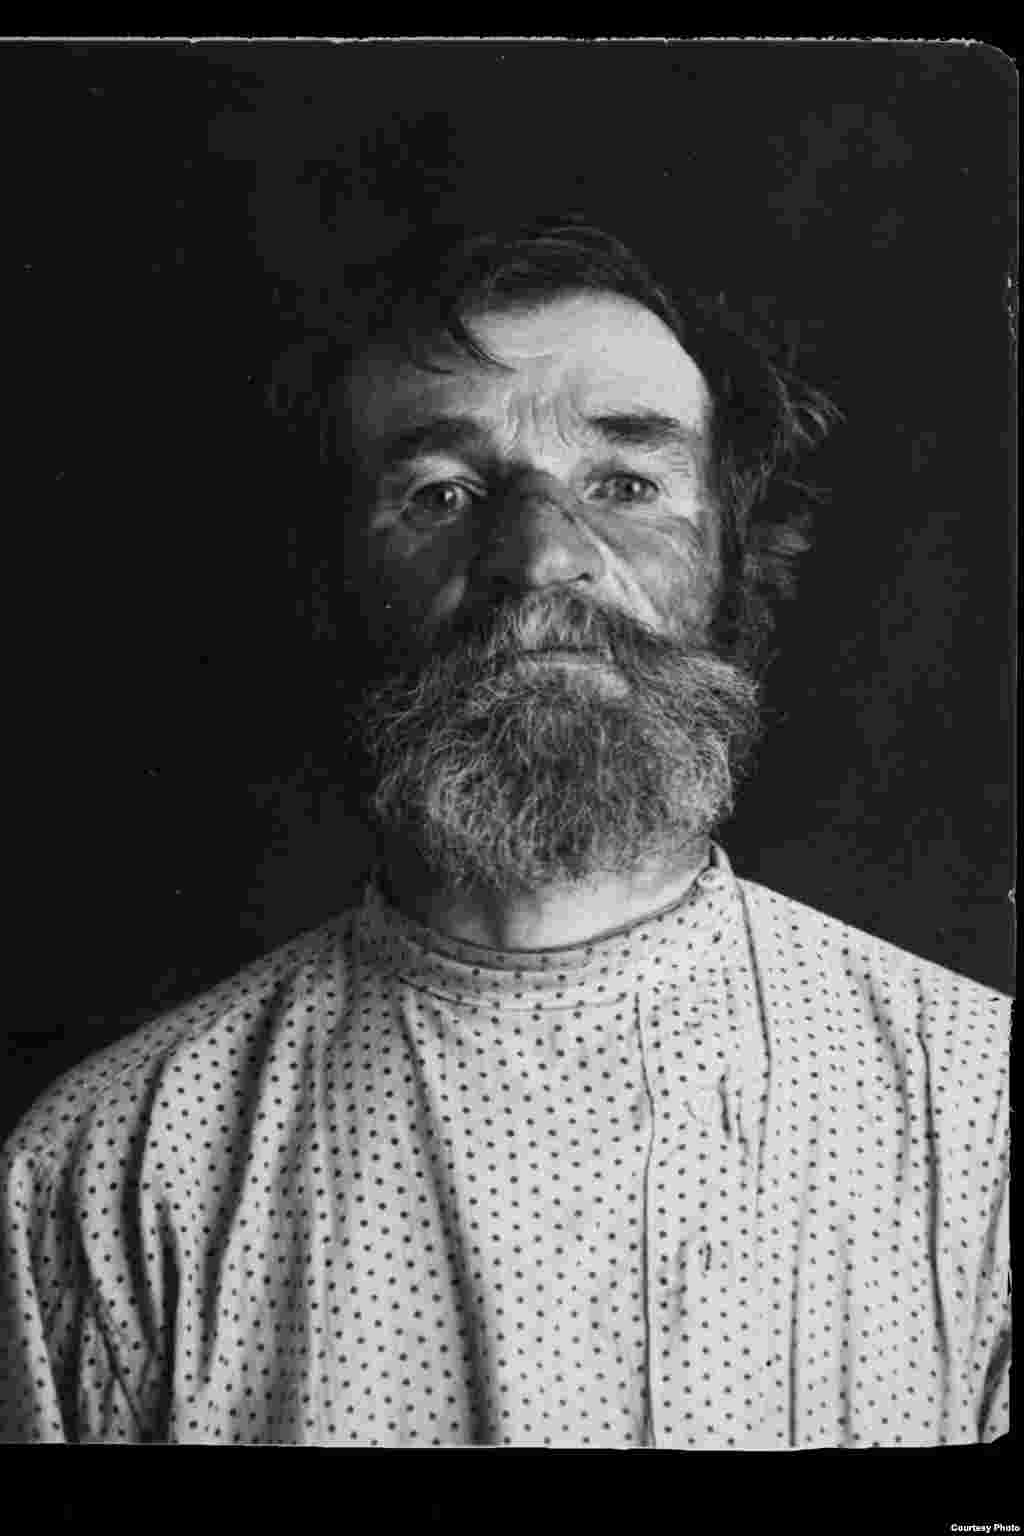 Vasily Semyonovich Kurenkov: Russian; born 1886 in Faleleyevo village, Western Oblast; primary education; no party affiliation; worker on a state farm; lived in Polozovo village, Moscow Oblast. Arrested on August 10, 1937. Sentenced to death on August 19, 1937. Executed on August 21, 1937. Rehabilitated in 1989.